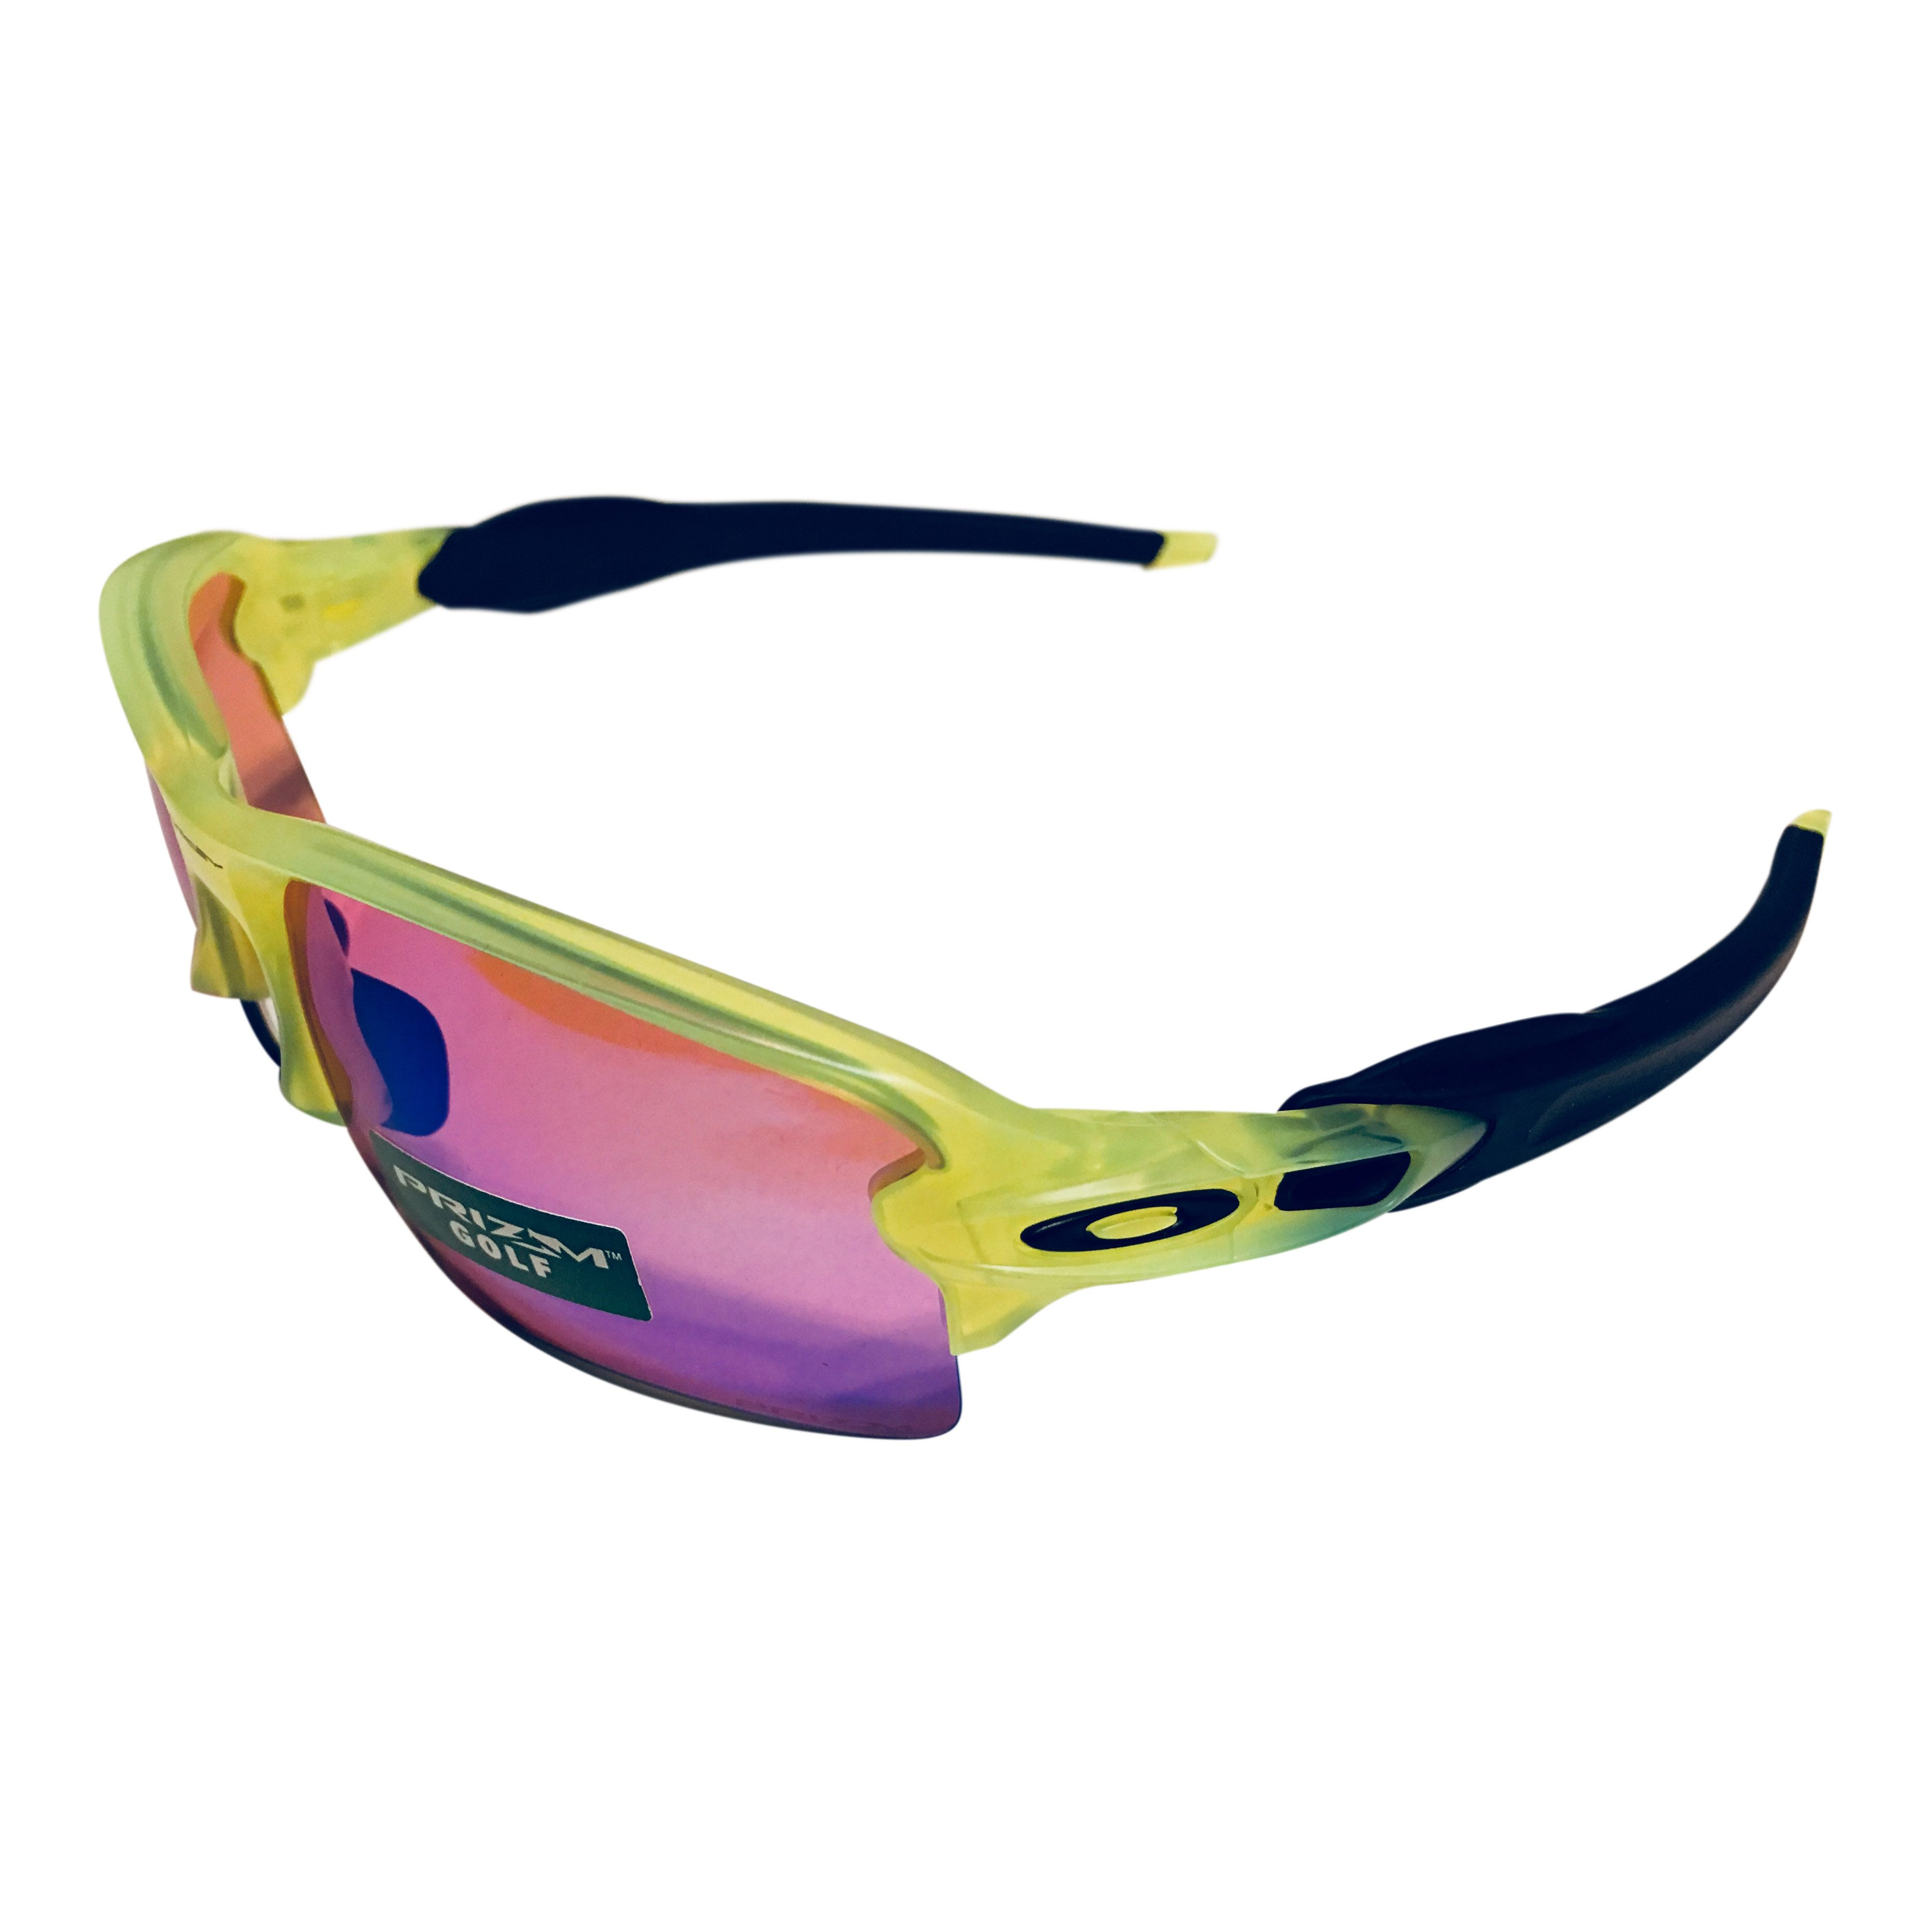 5699a41462c Oakley Flak 2.0 XL Sunglasses - Uranium Green - Prizm Golf Lens 009188-11